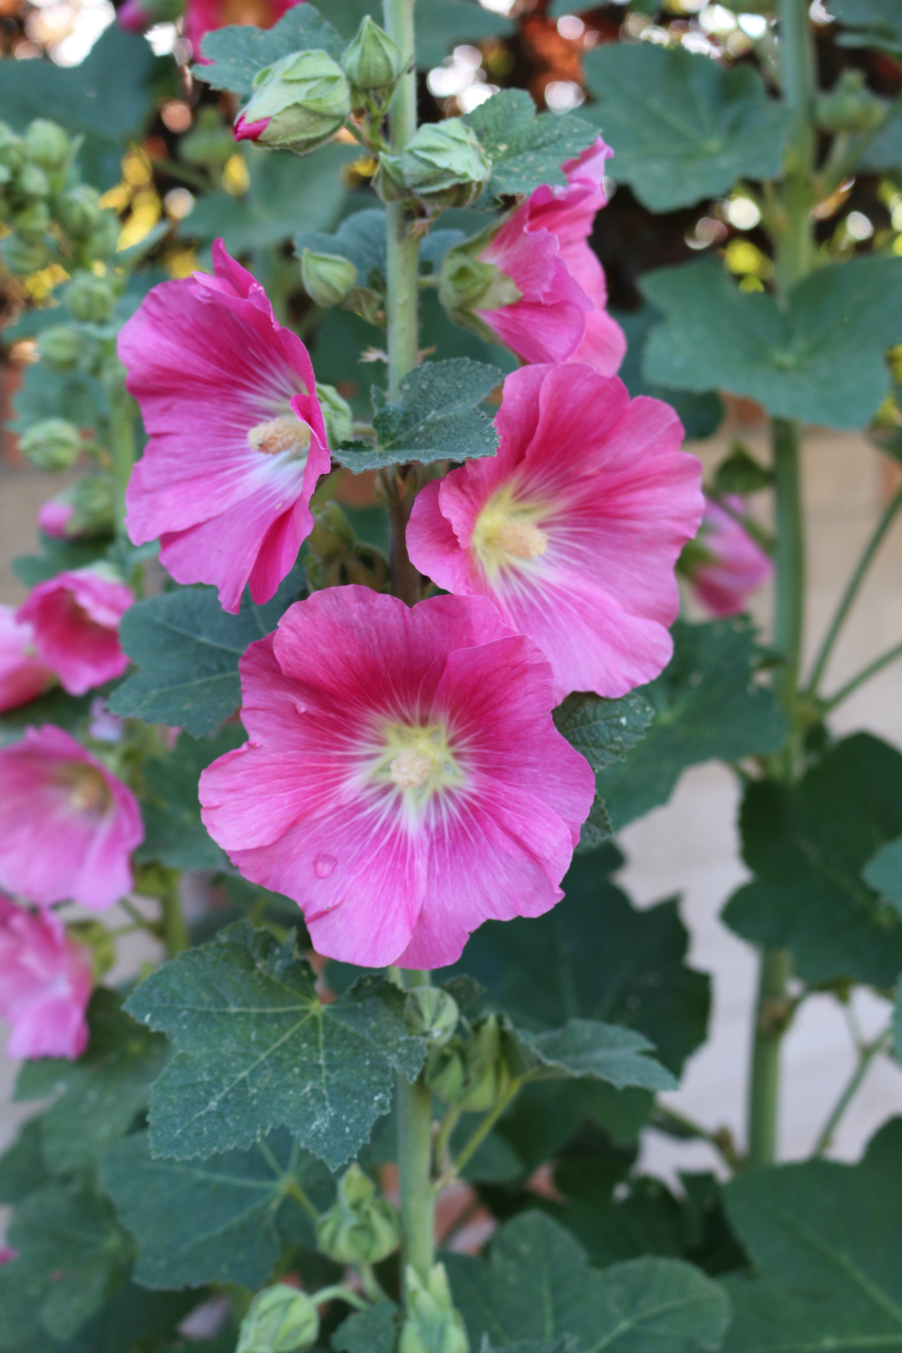 My hollyhocks have started blooming this week . . . they are just beautiful. They produce a huge amount of seeds and the birds love them. I now have plants growing everywhere in my gardens.